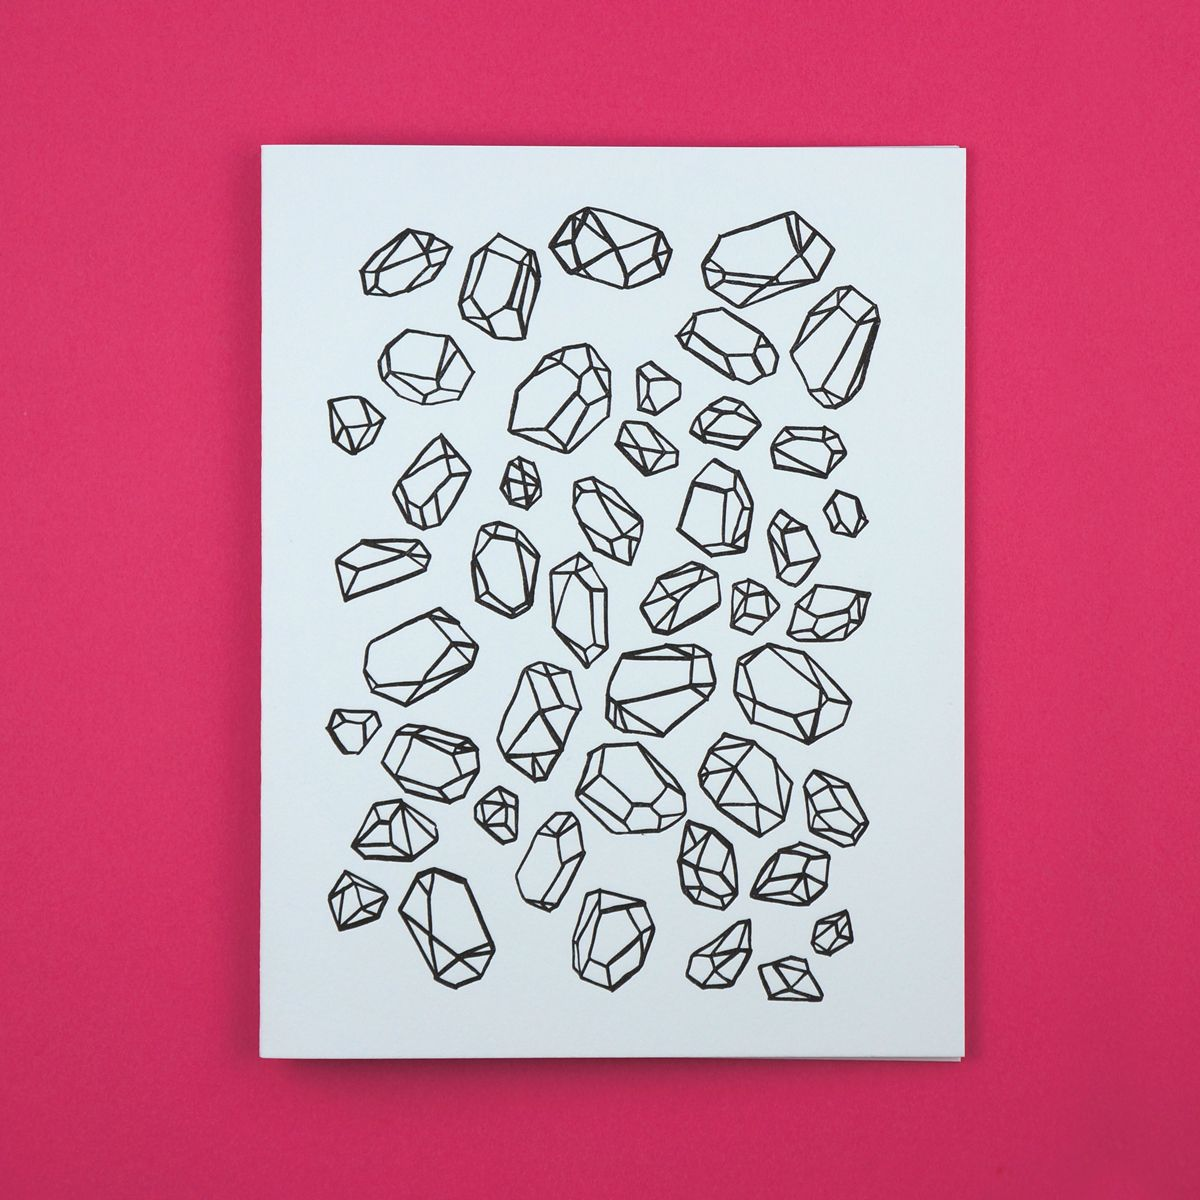 Illustrated gemstone pattern in a letterpress printed greeting card illustrated gemstone pattern in a letterpress printed greeting card kristyandbryce Images